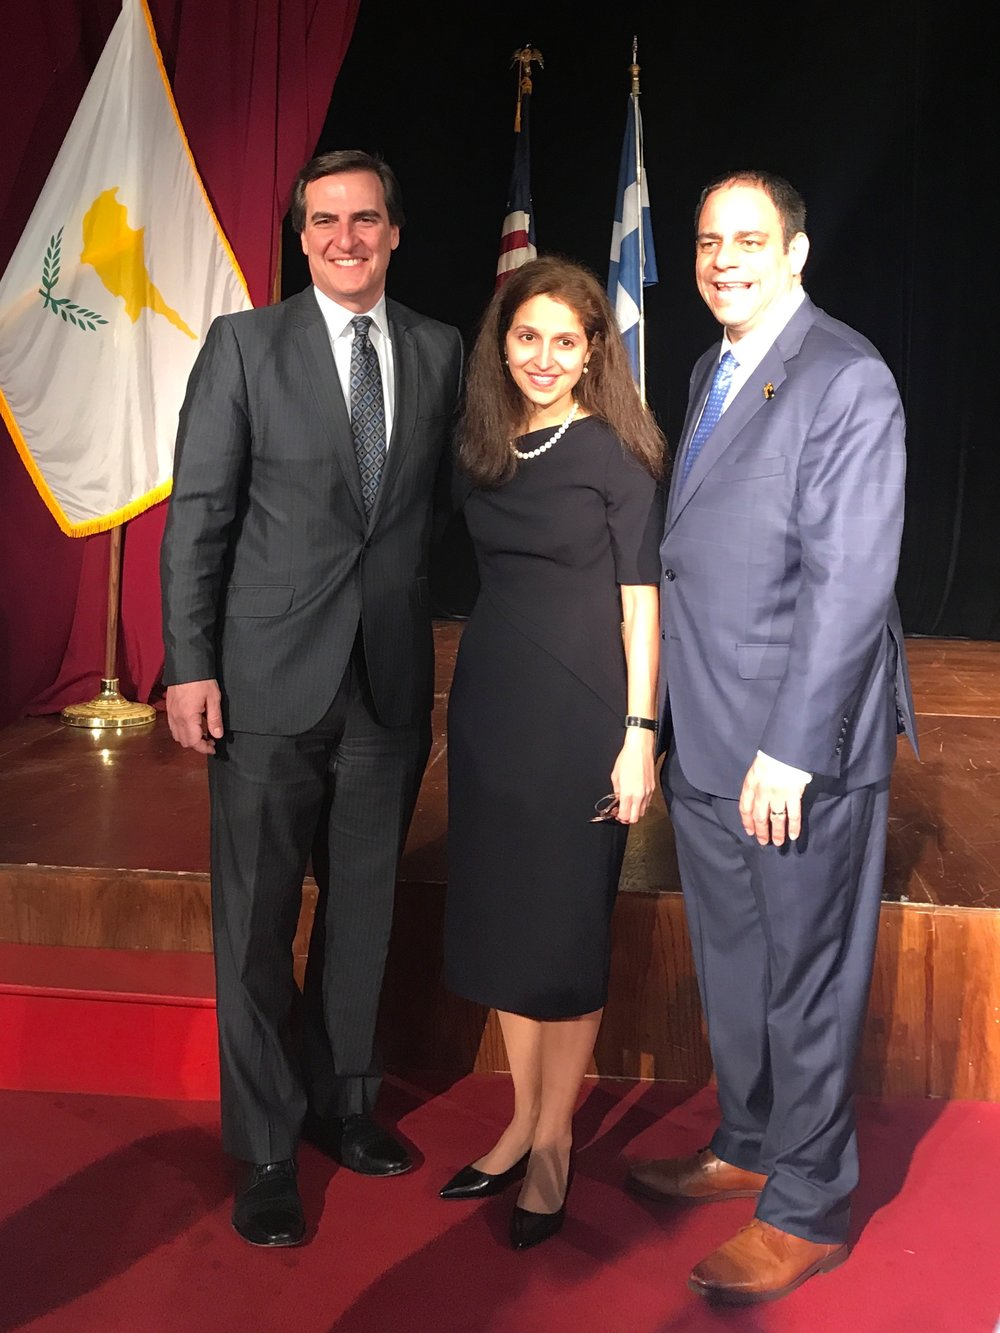 State Sen. Michael Gianaris (left), Assemblymember Aravella Simotas (center) and Councilmember Costa Constantinides are each of Greek descent.